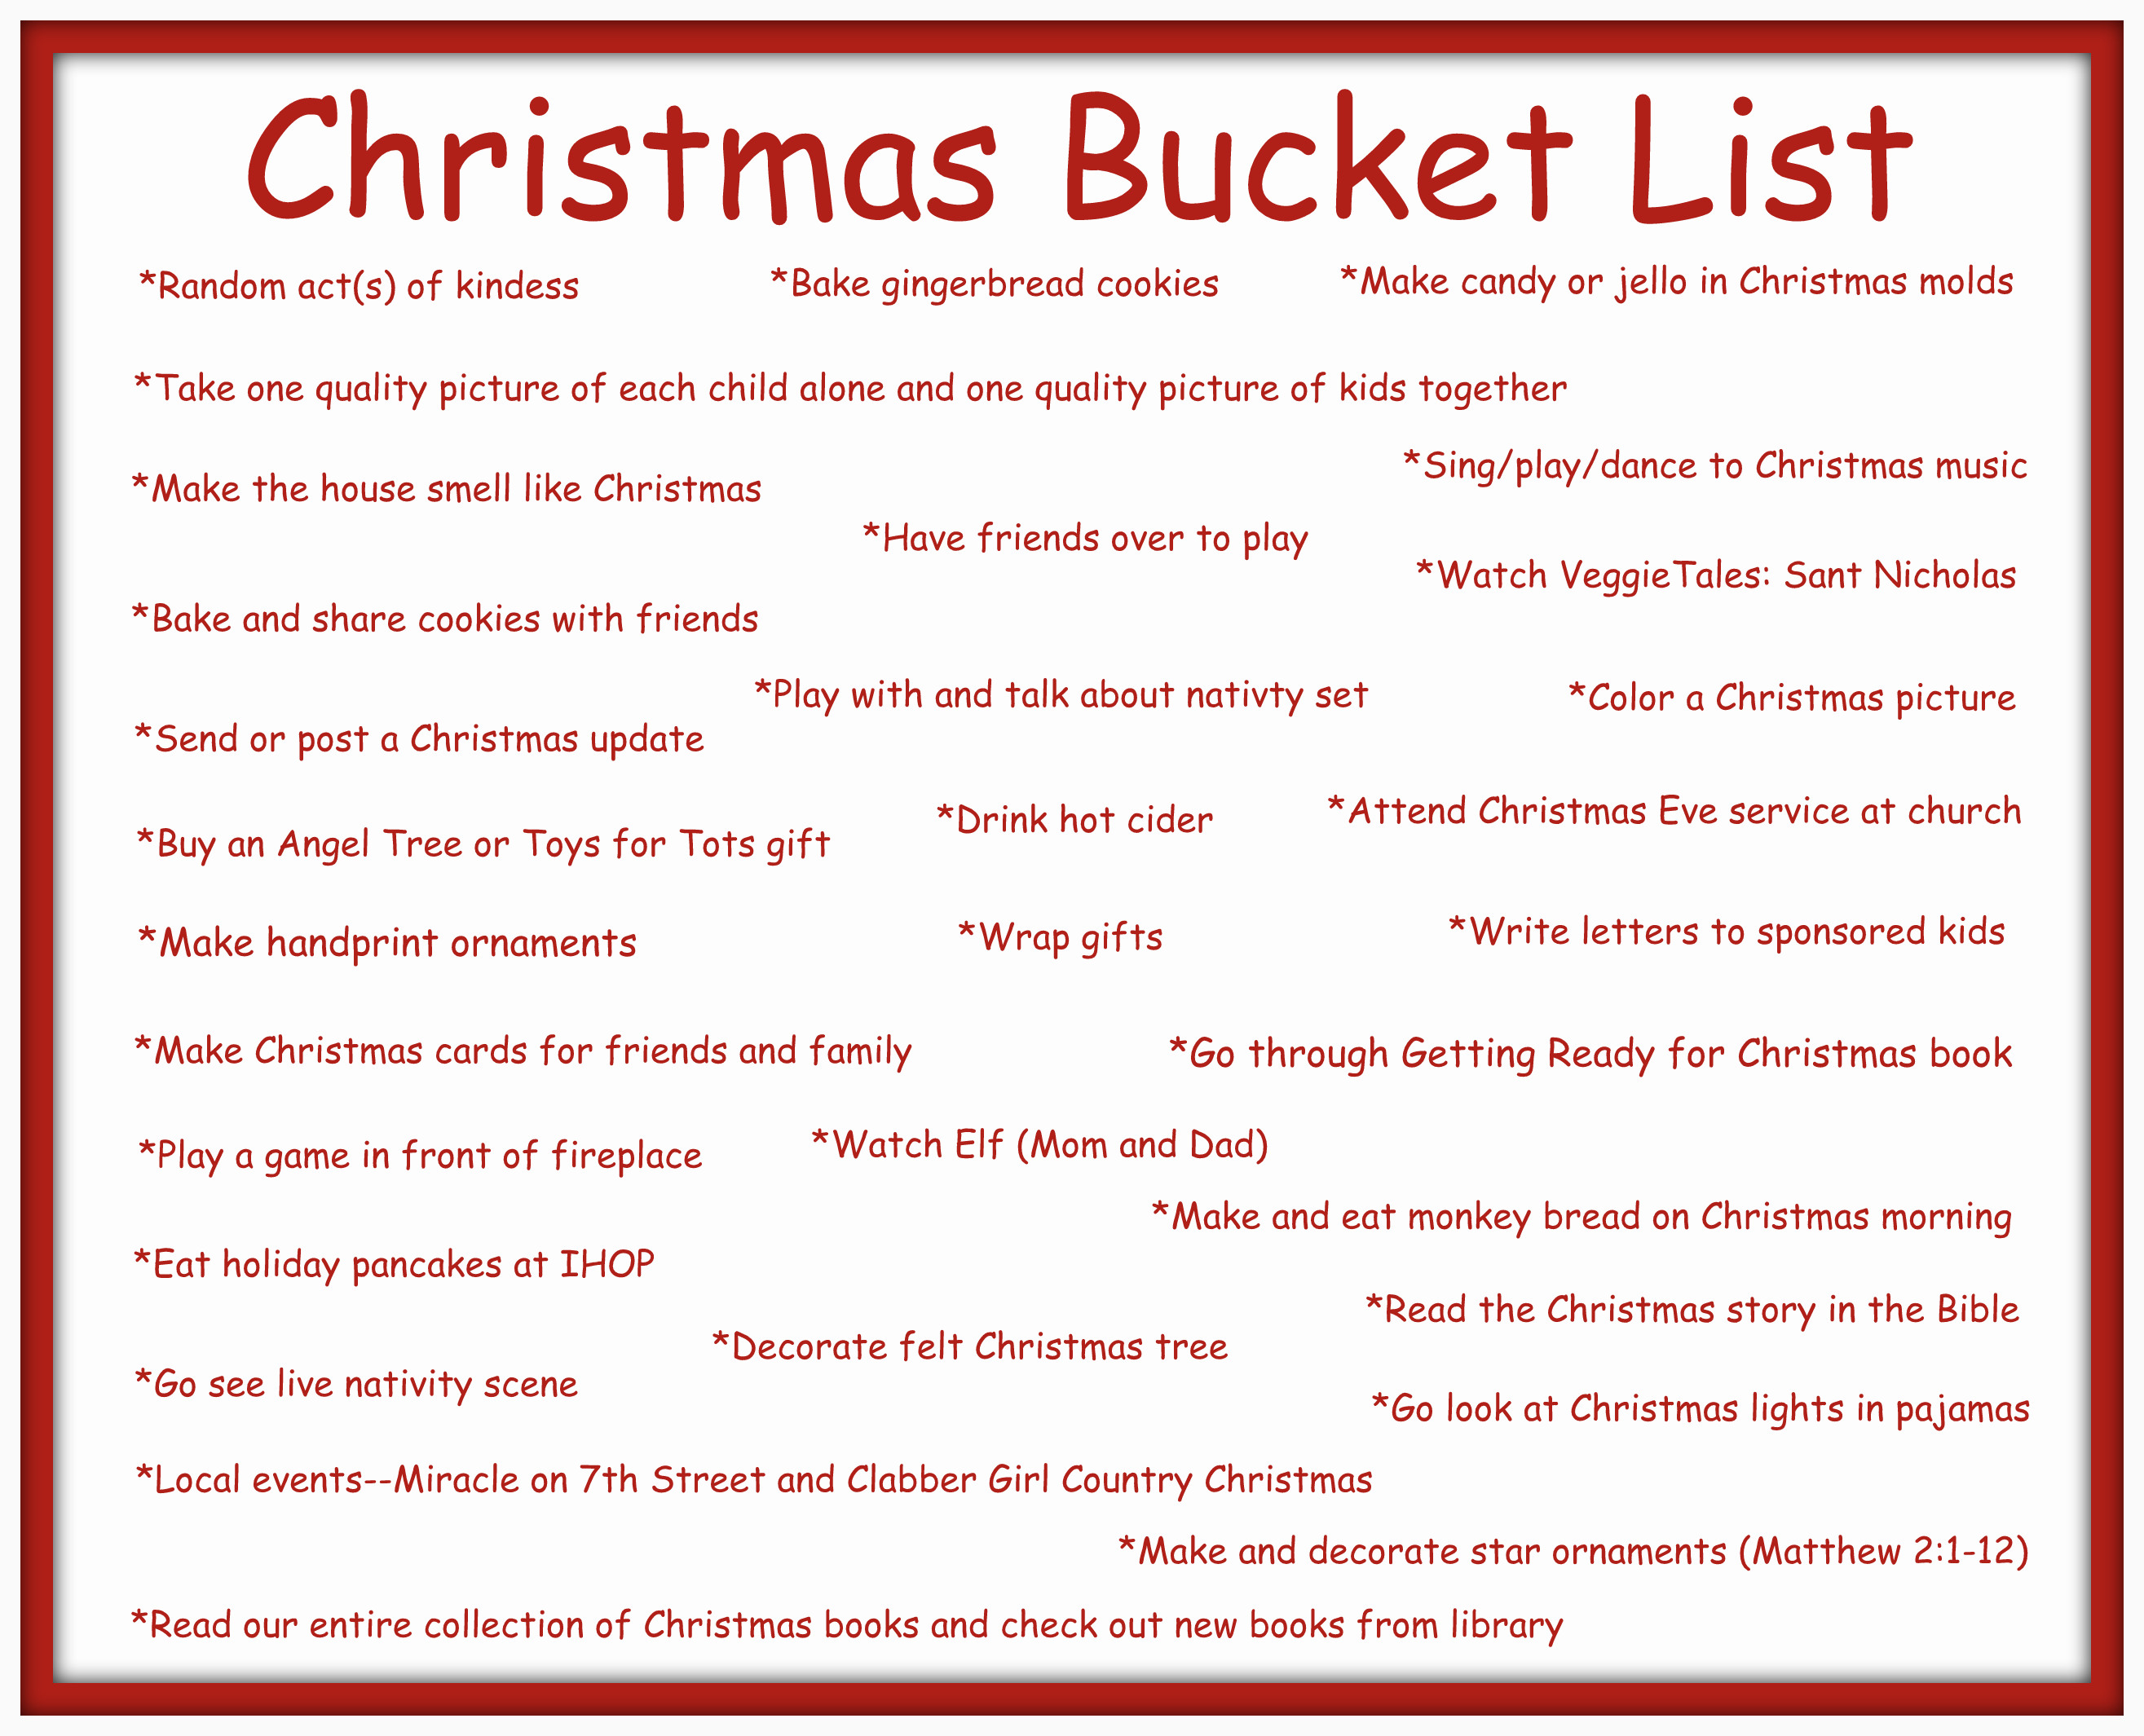 christmas list ideas for 14 year olds